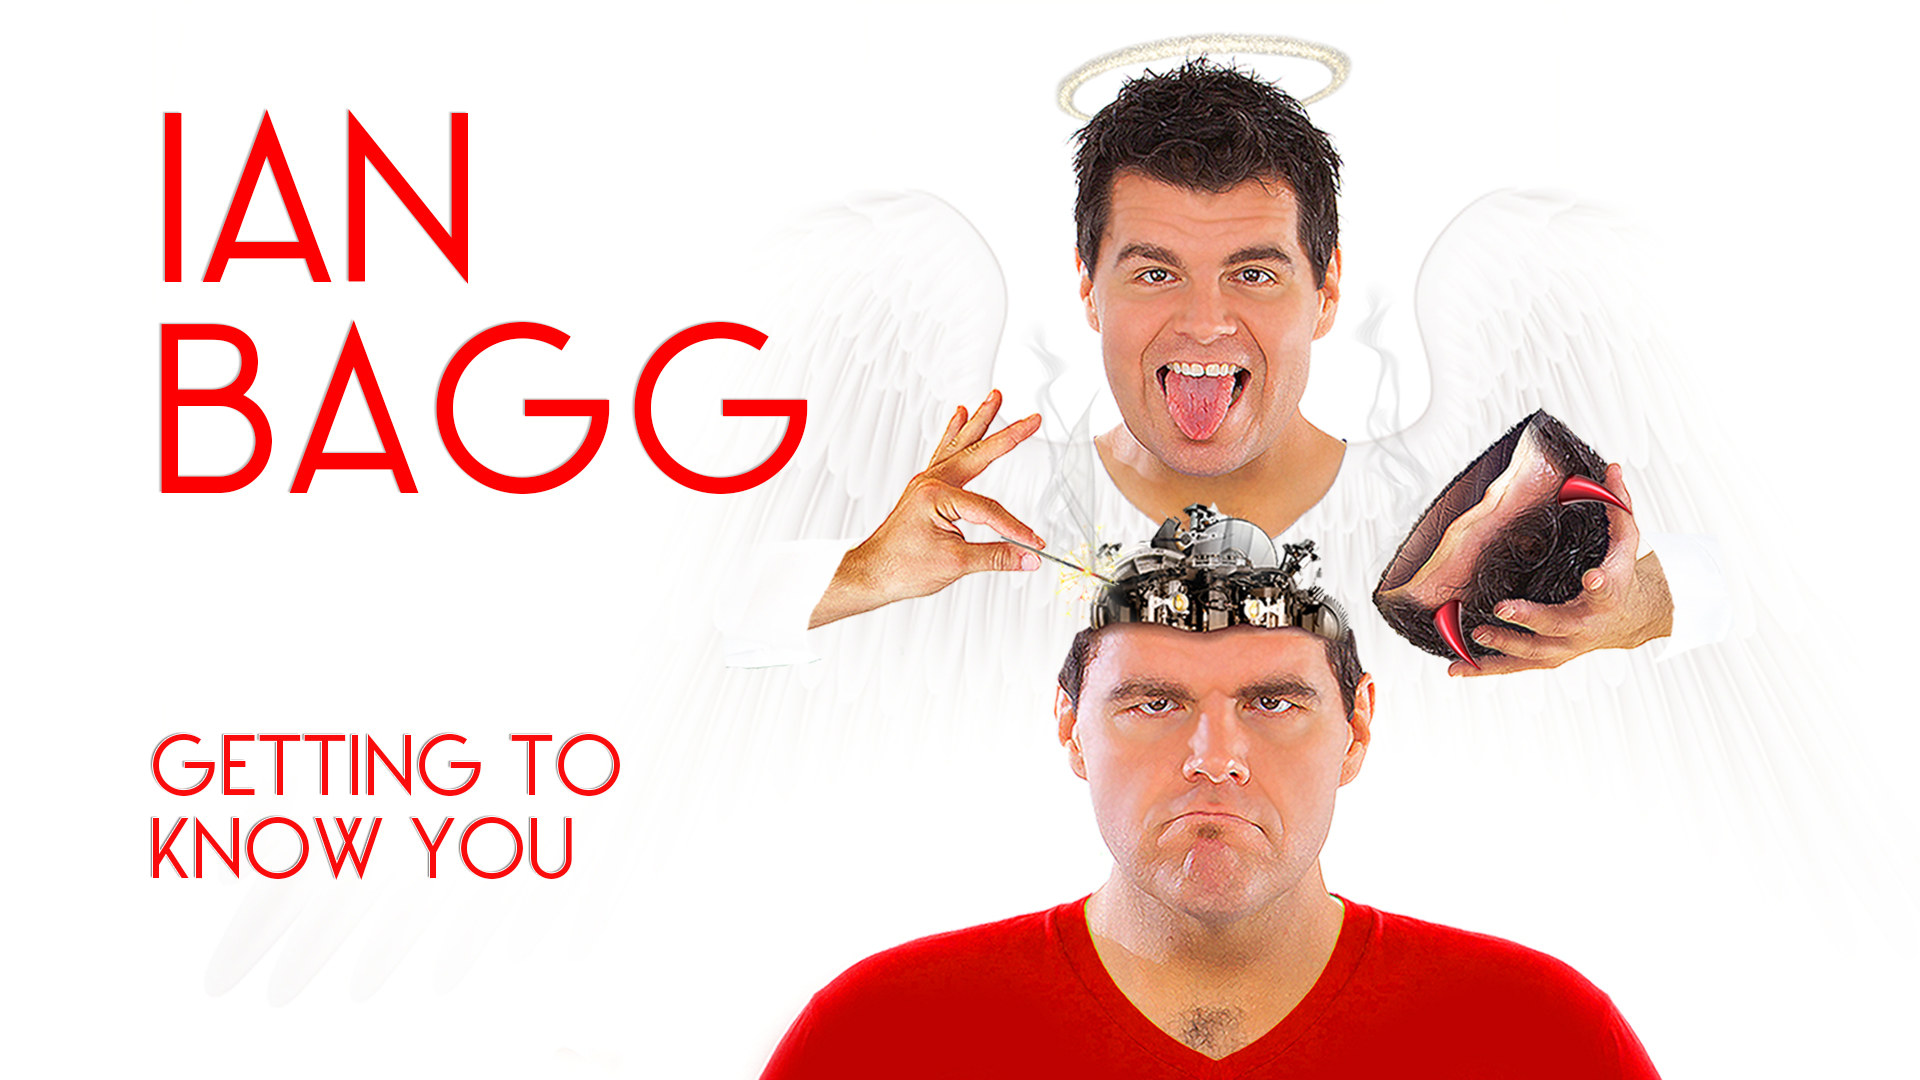 Ian Bagg: Getting to Know You